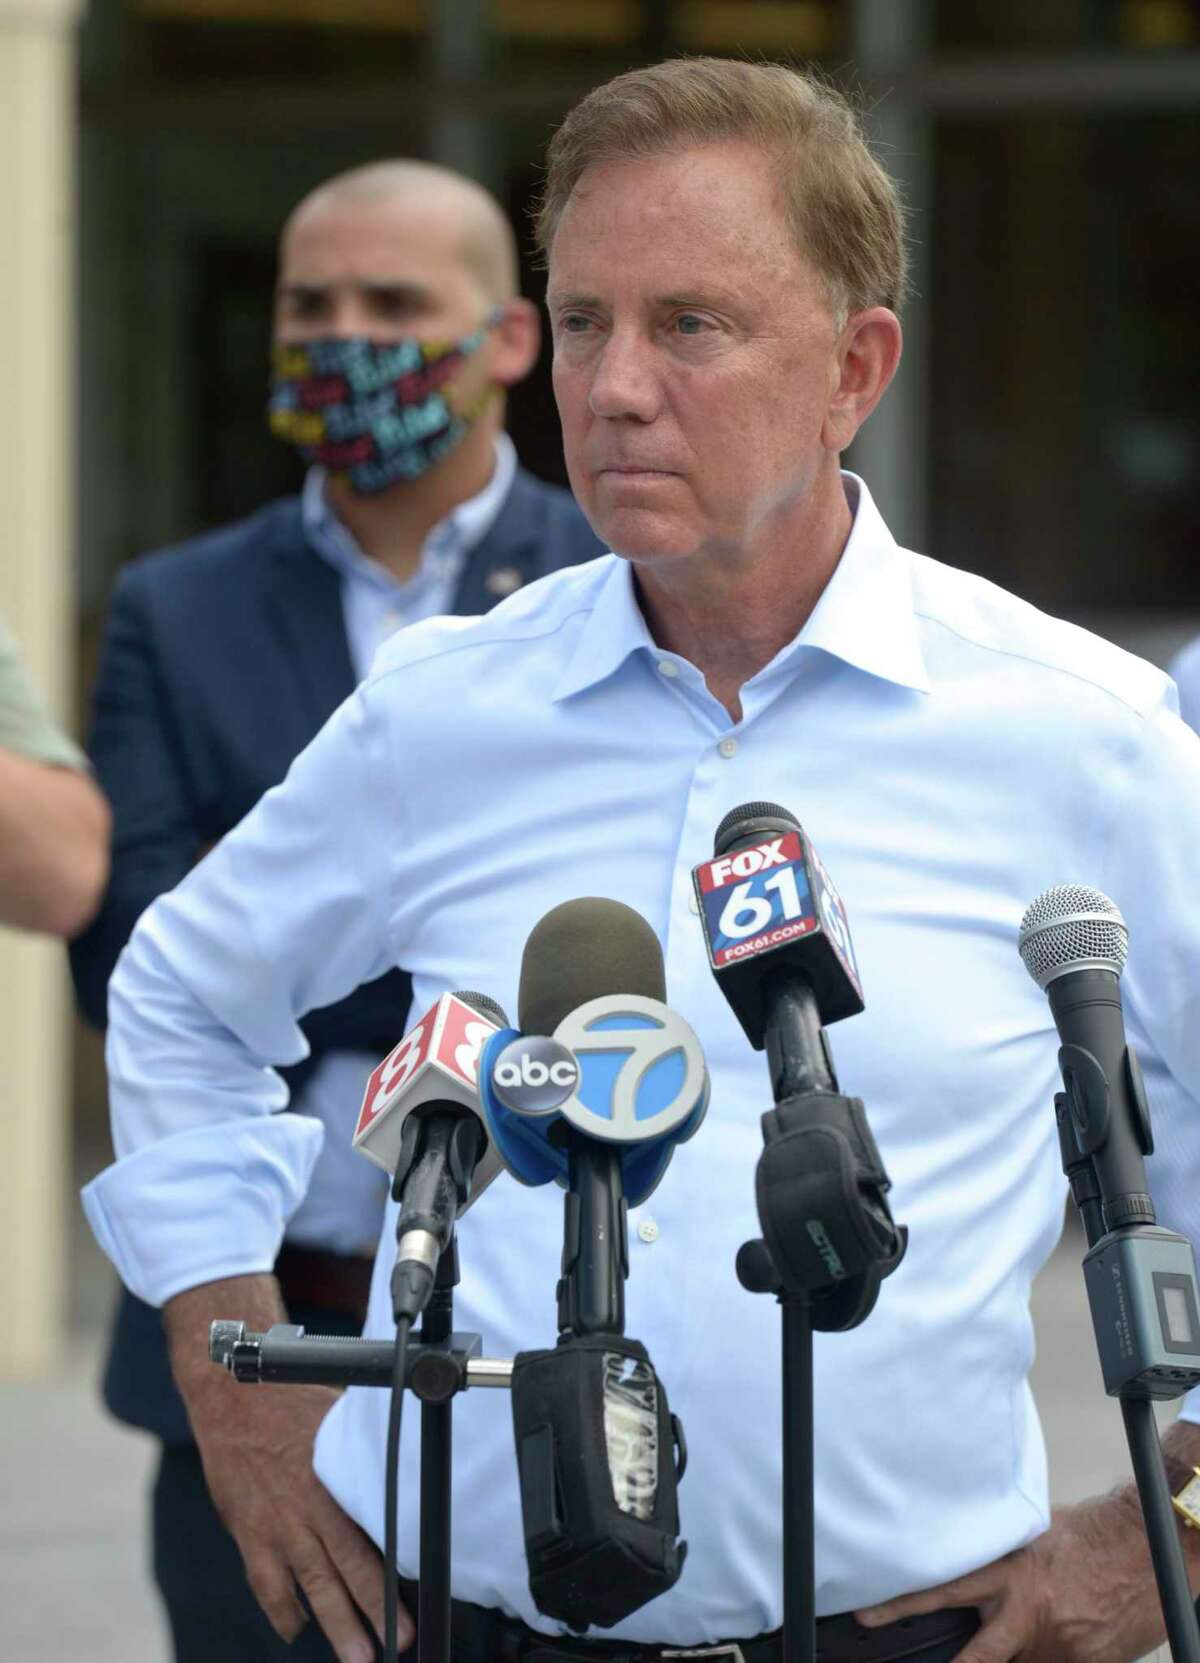 Governor Ned Lamont speaks at a press conference at Danbury High School. Lamont came to the city to survey damage from tropical storm Isaias. Friday, August 7, 2020, in Danbury, Conn.